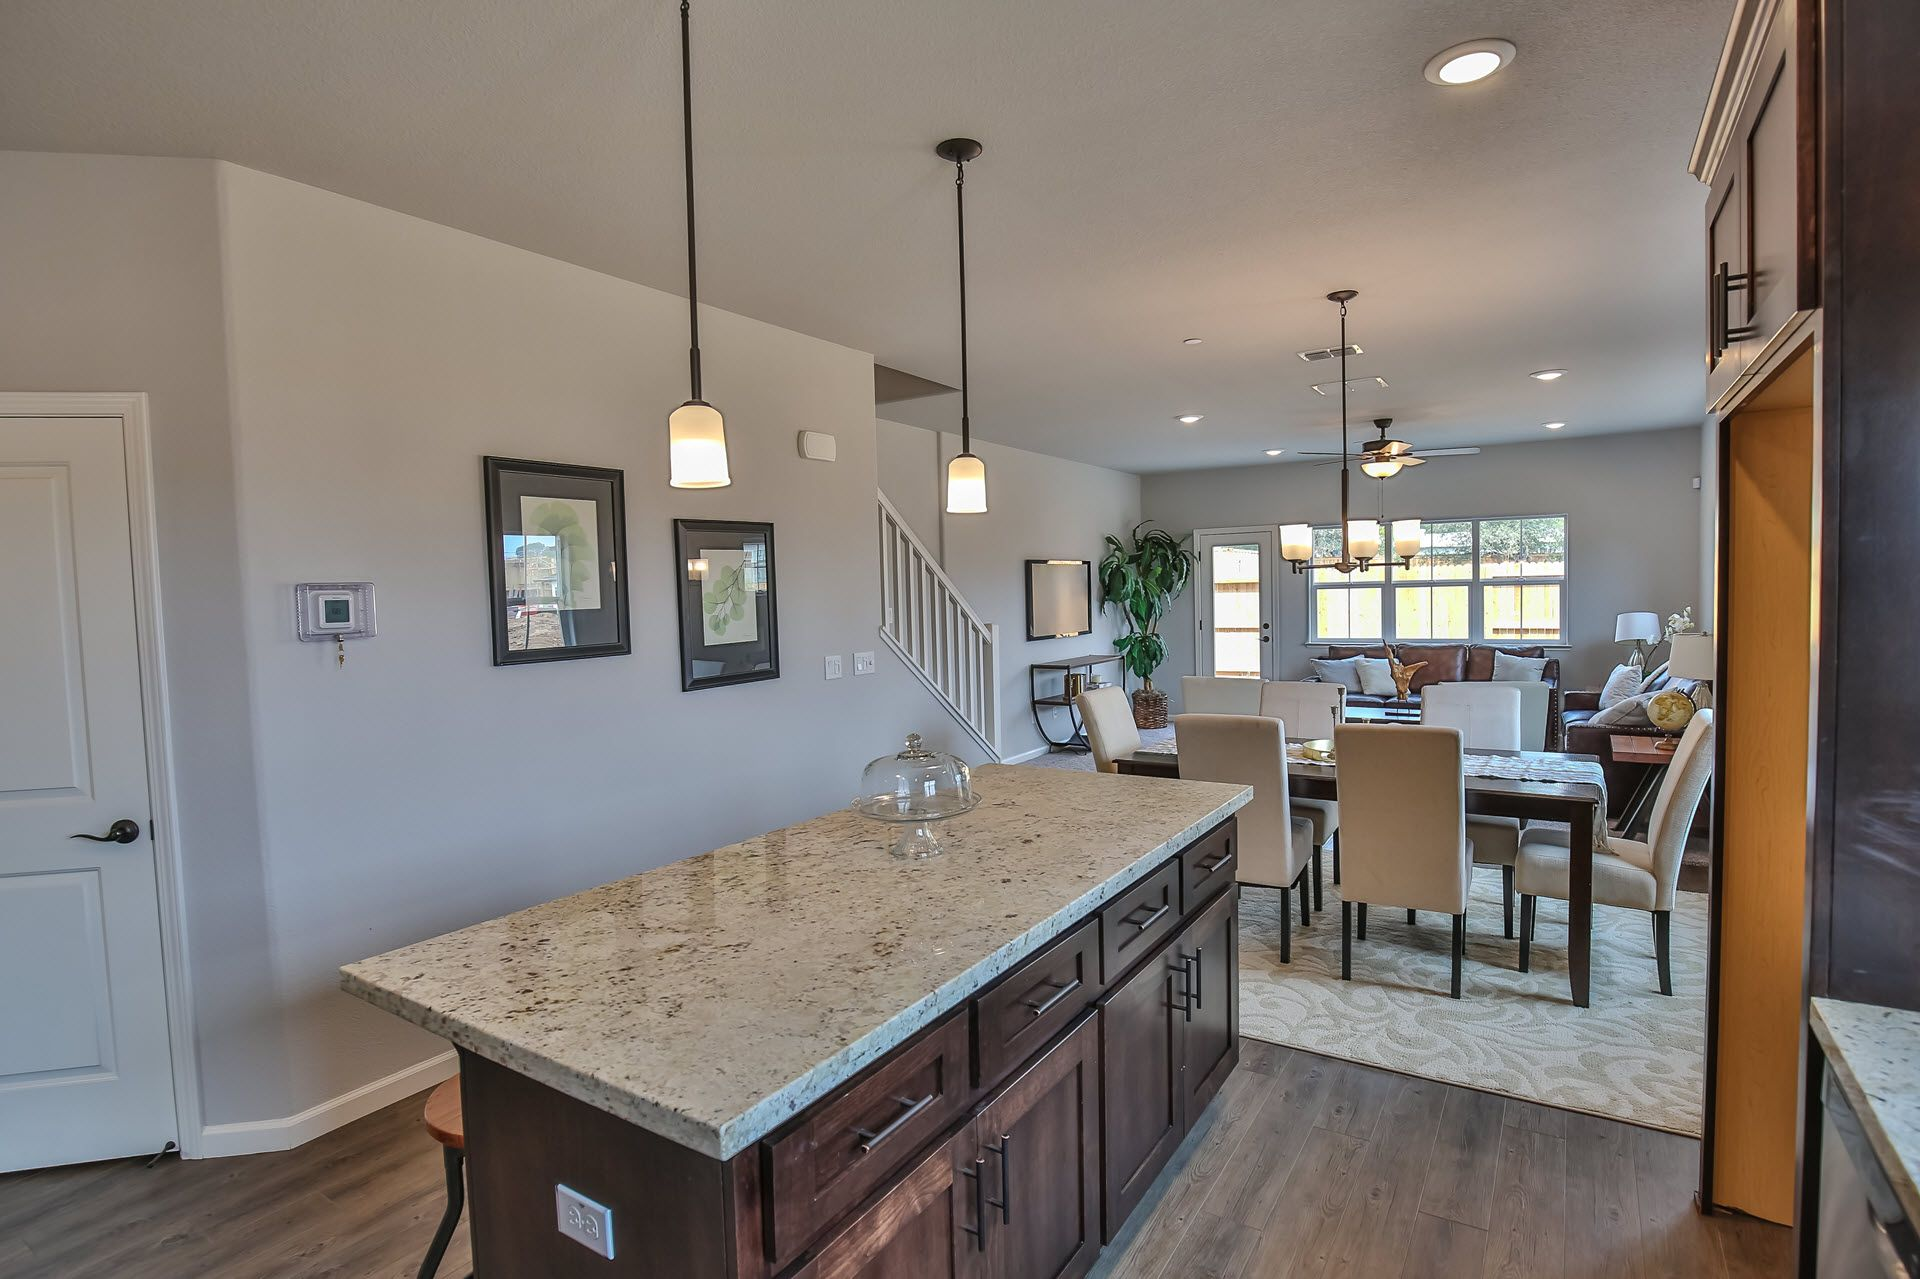 Kitchen featured in the Residence 2059 By Village by the Ponds  in Sacramento, CA